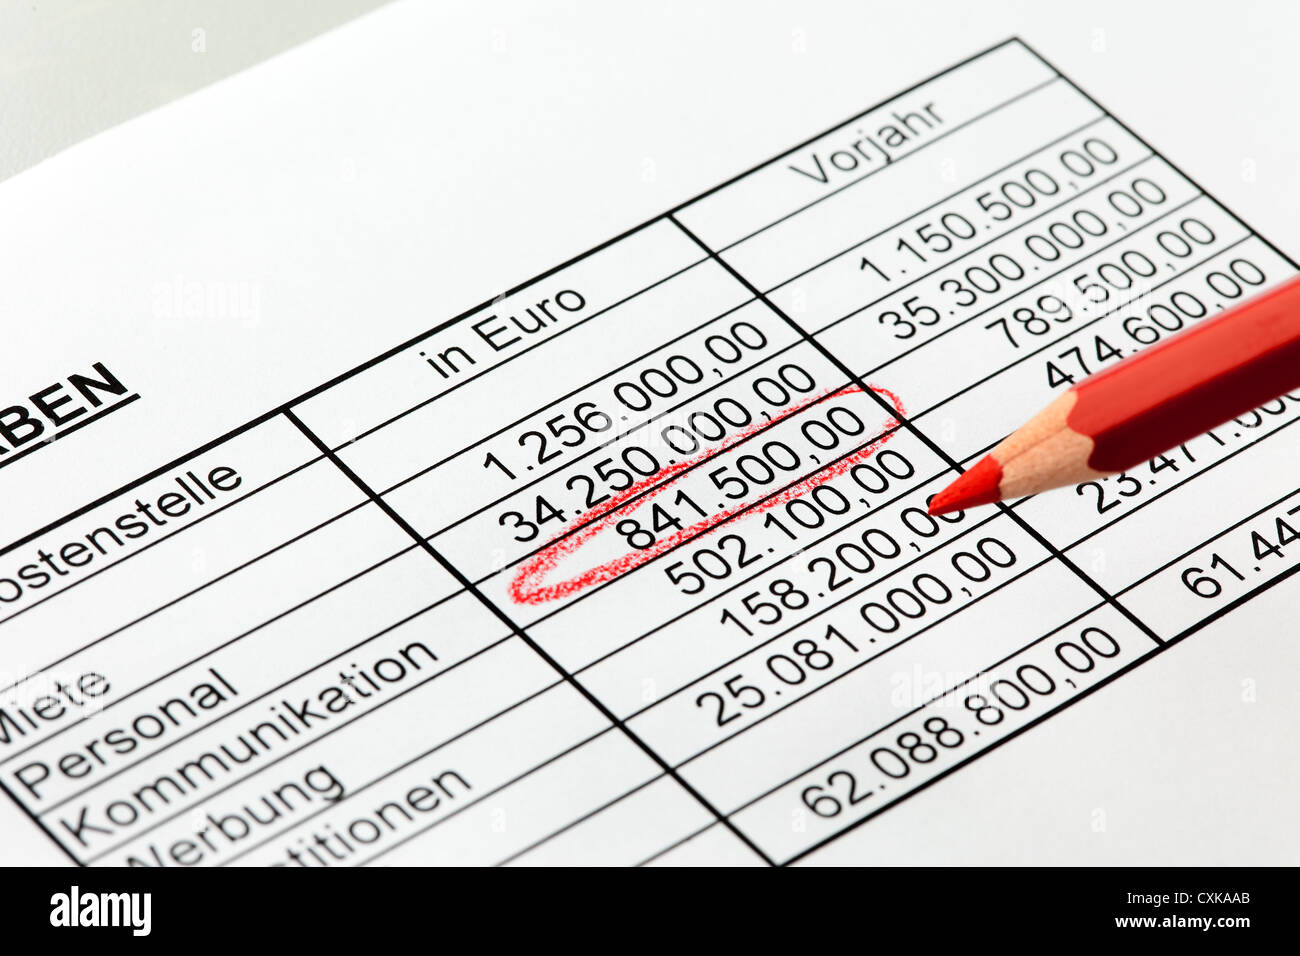 Statistical numbers - Stock Image